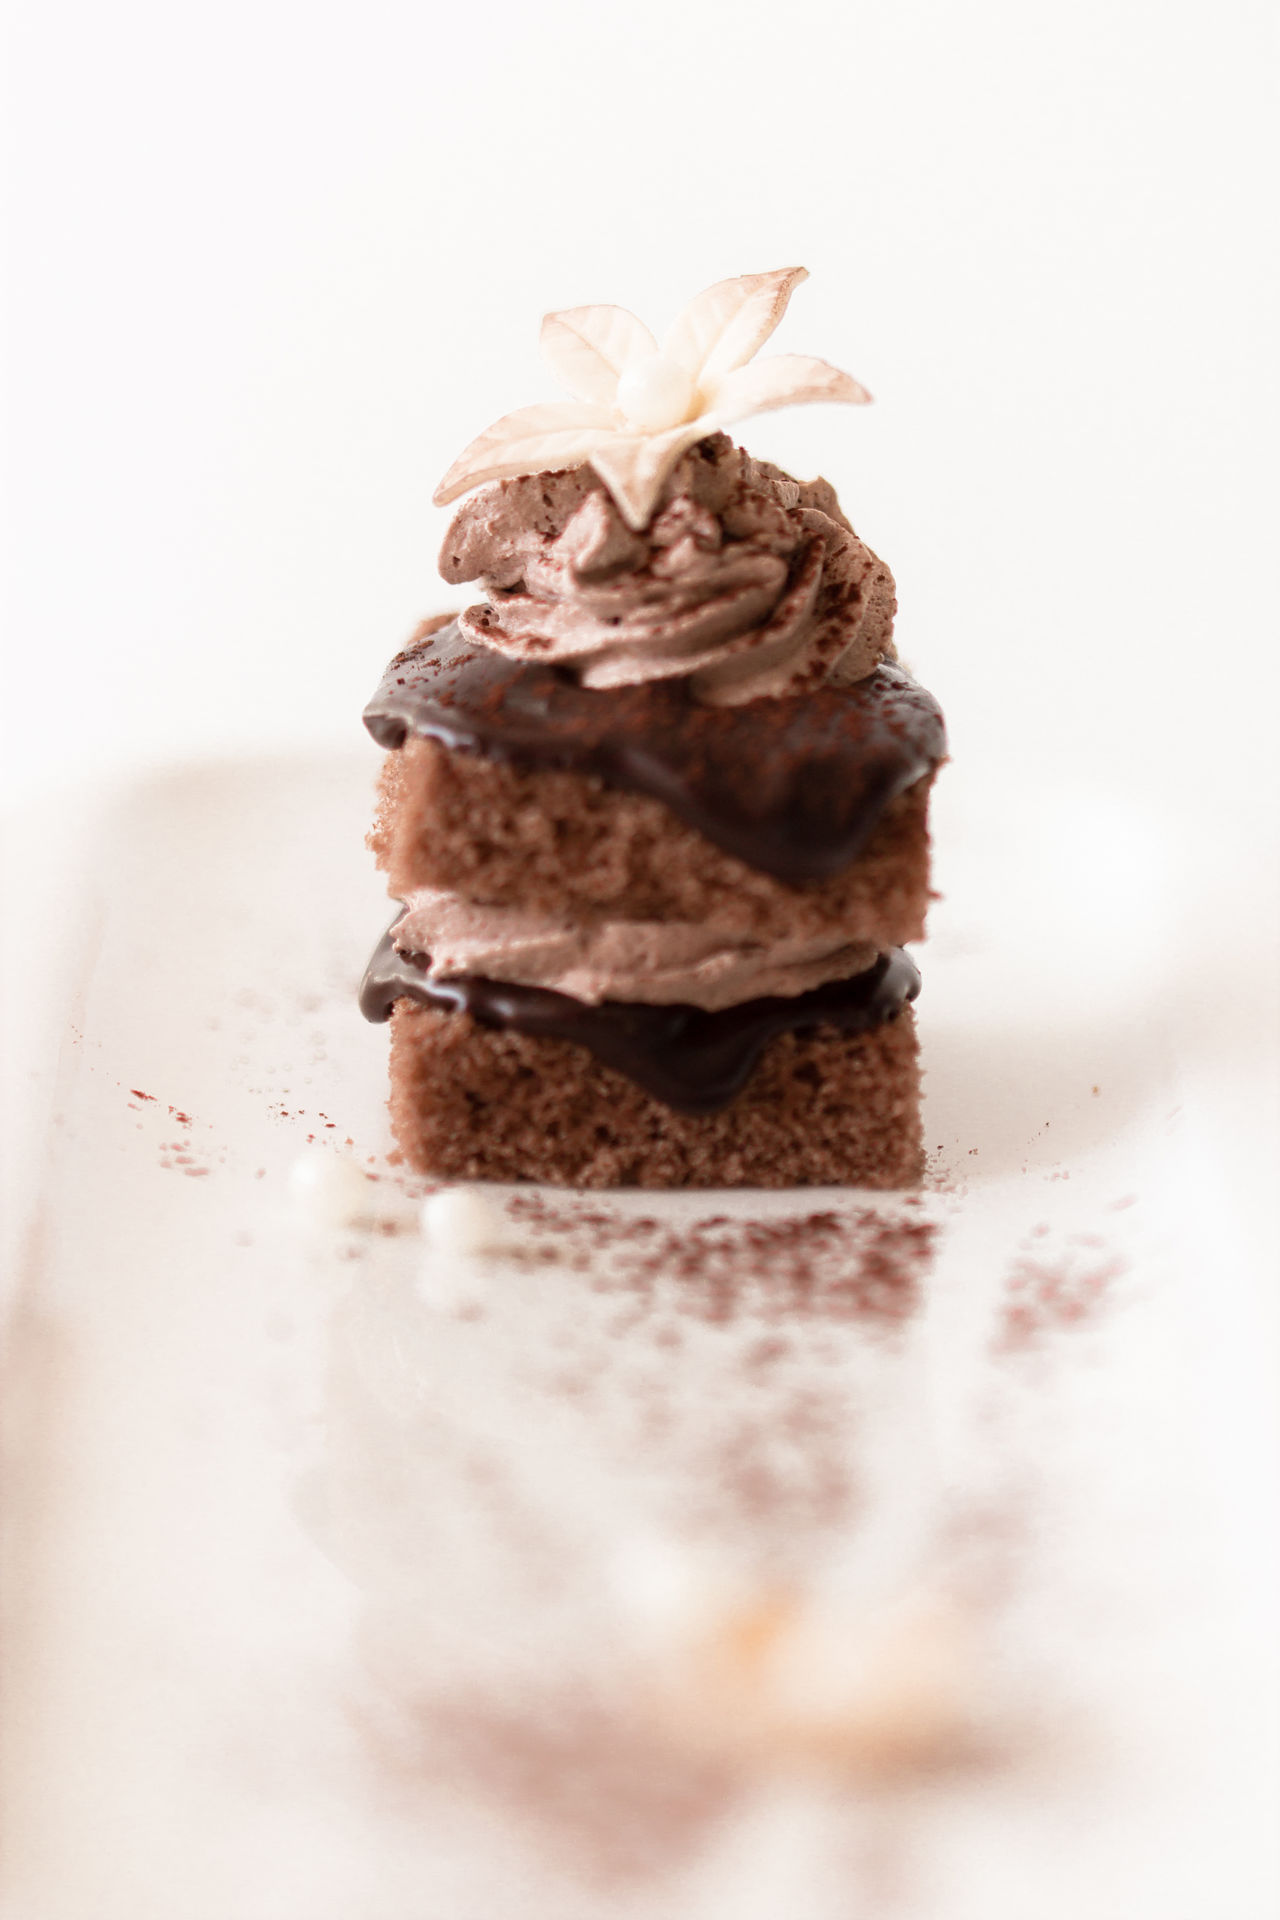 tiny chocolate cake Cake Chocolate Close-up Day Dessert Food Food And Drink Freshness Indoors  Indulgence No People Ready-to-eat Selective Focus Studio Shot Sweet Food White Background